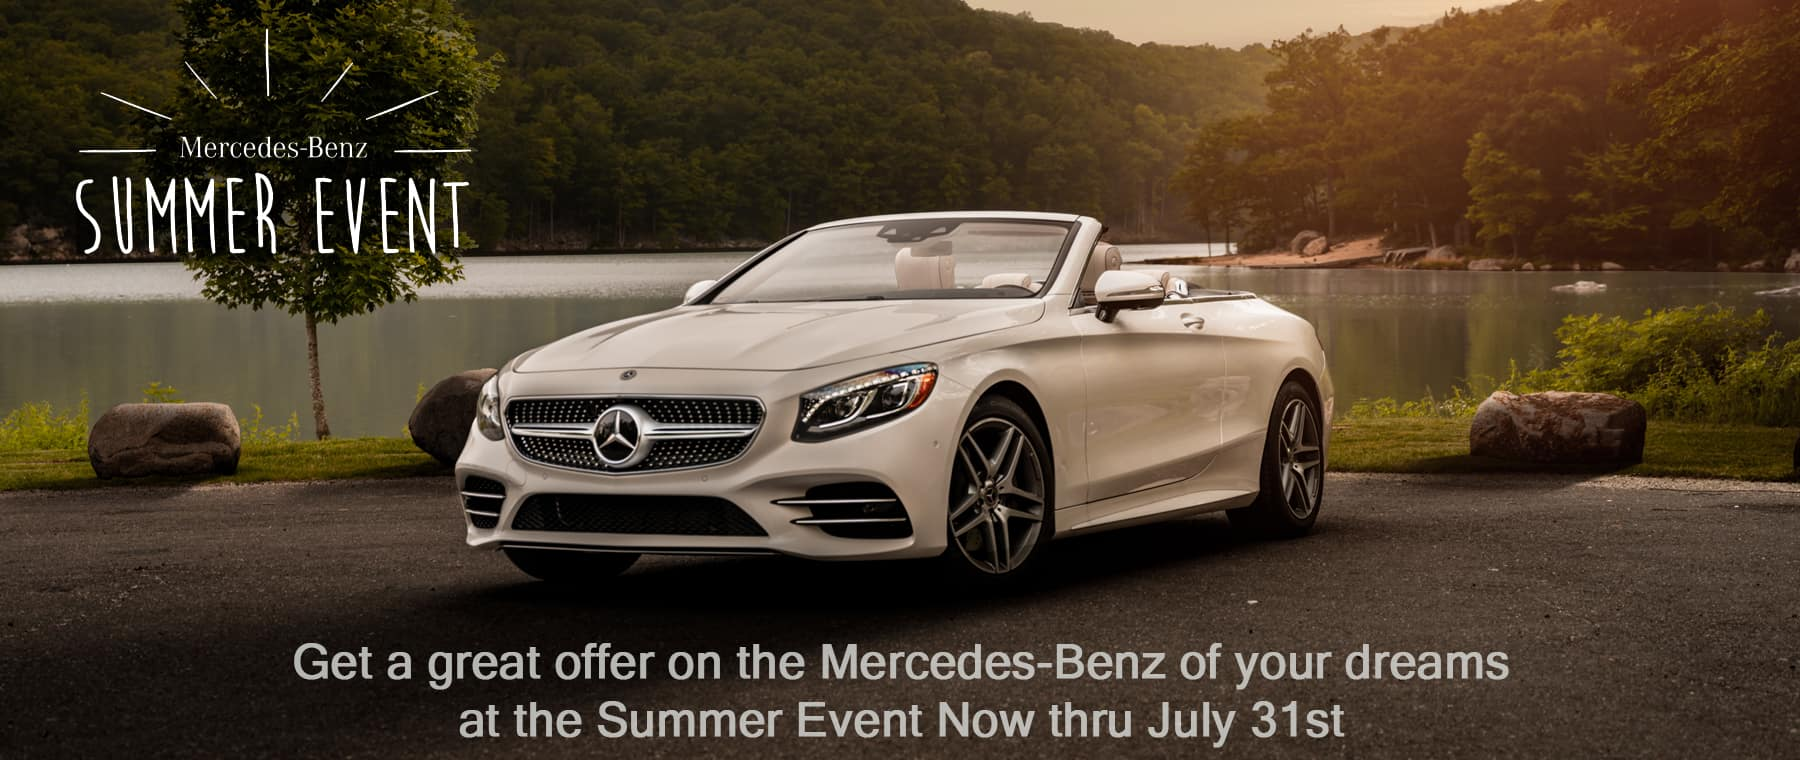 summer event home page mercedes-benz dream